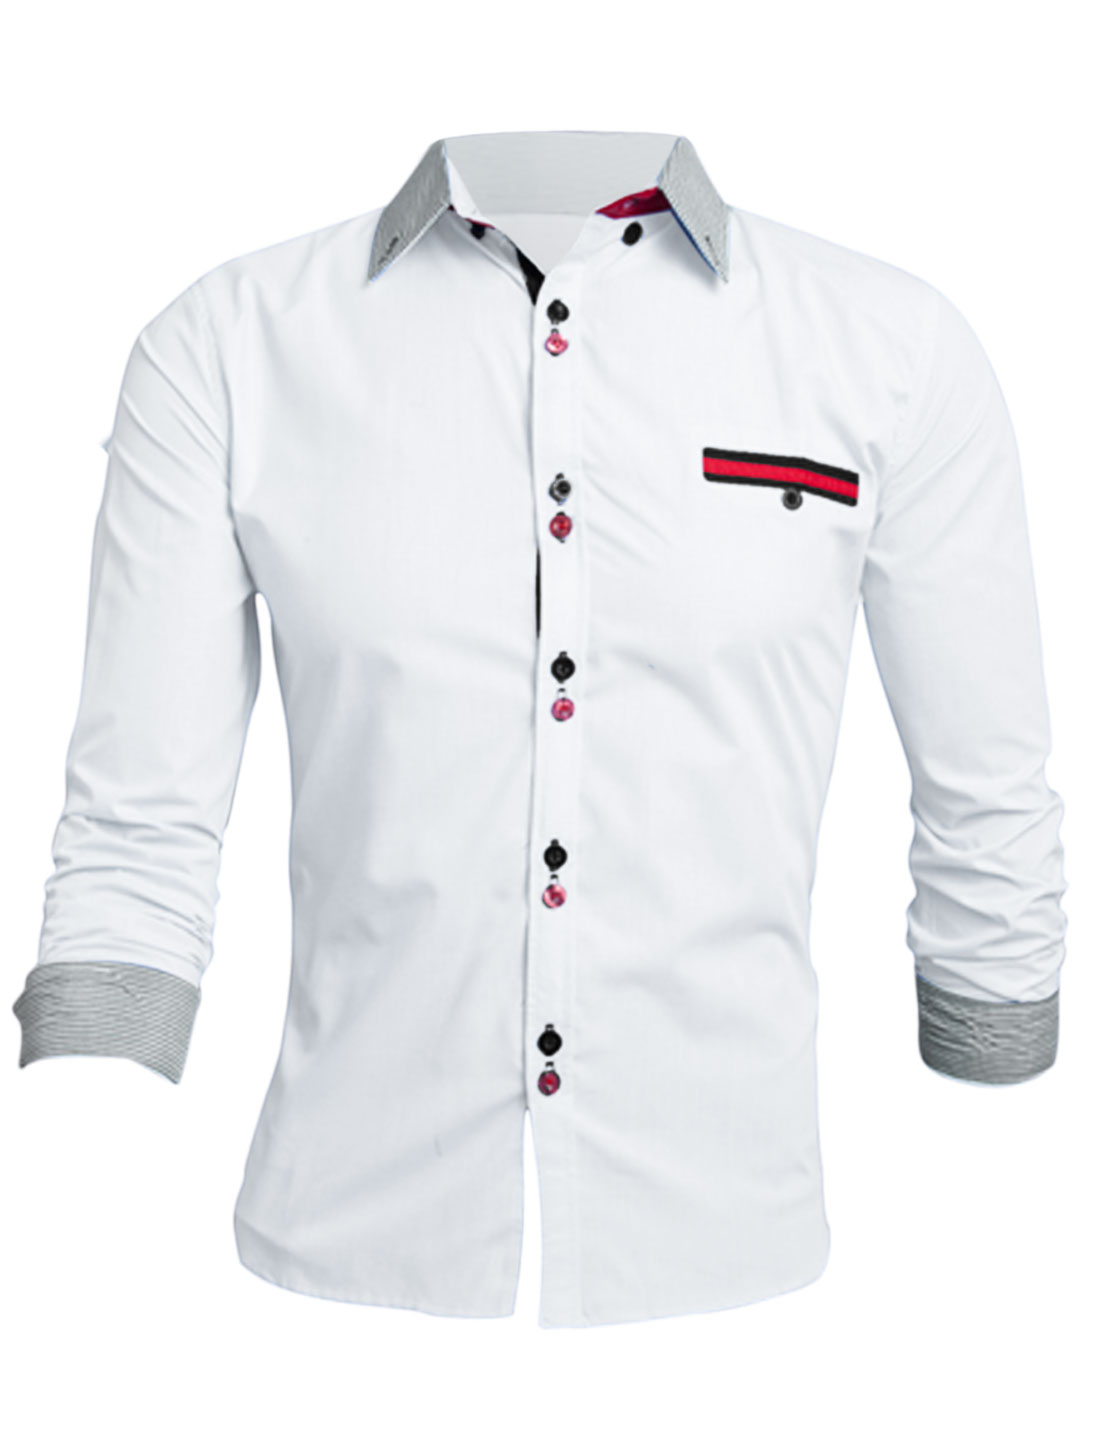 Men White Single Breasted Long Sleeves One Mock Pocket Leisure Shirt M